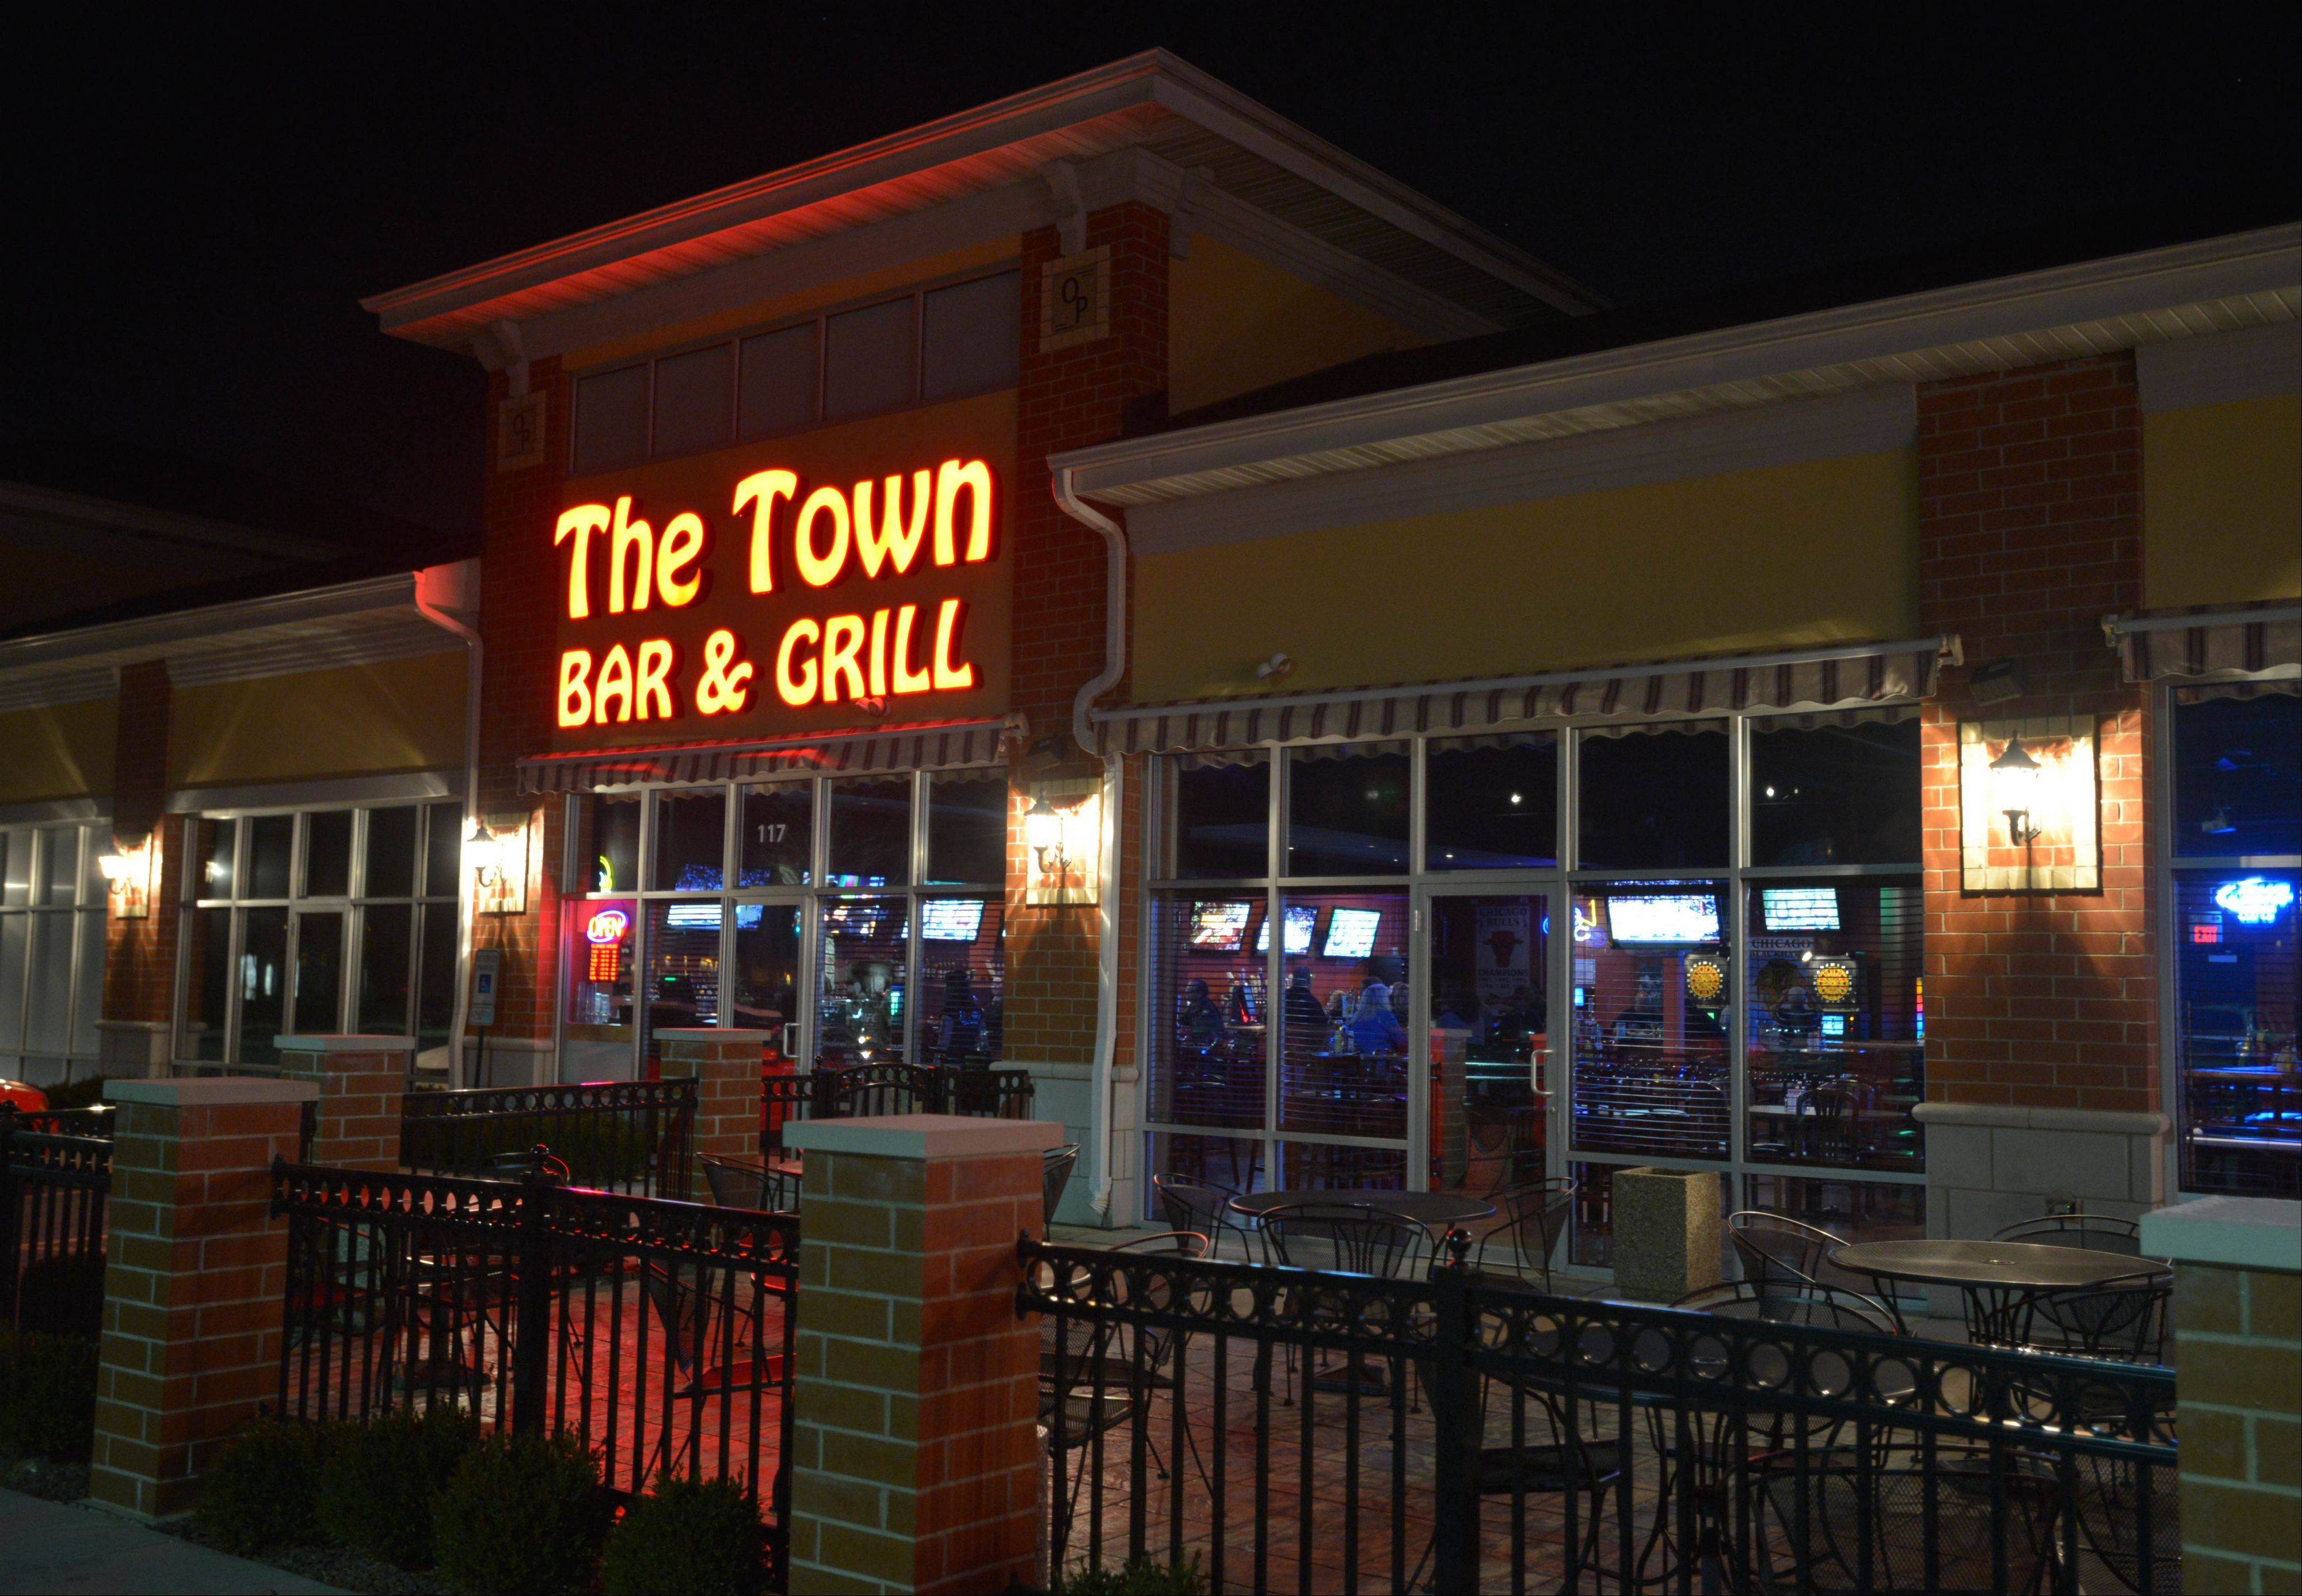 The Town Bar & Grill in Aurora brings in customers all week long with game nights, food and drink specials and sports on TV.